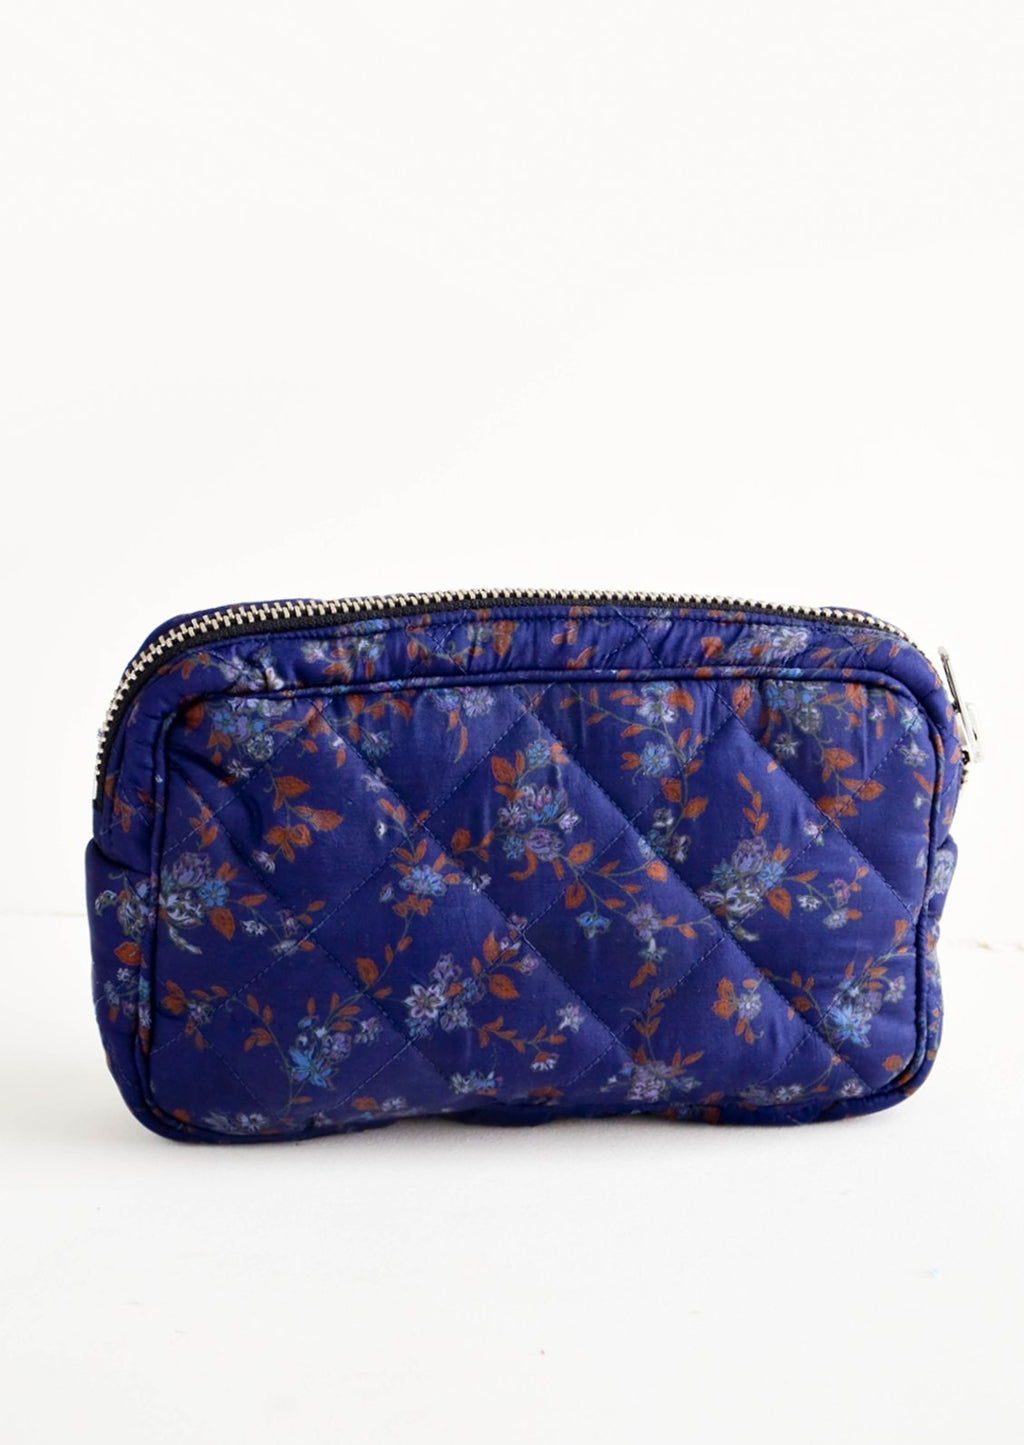 Small / Navy Flora: Flat and rectangular makeup travel bag with zip closure in navy blue floral